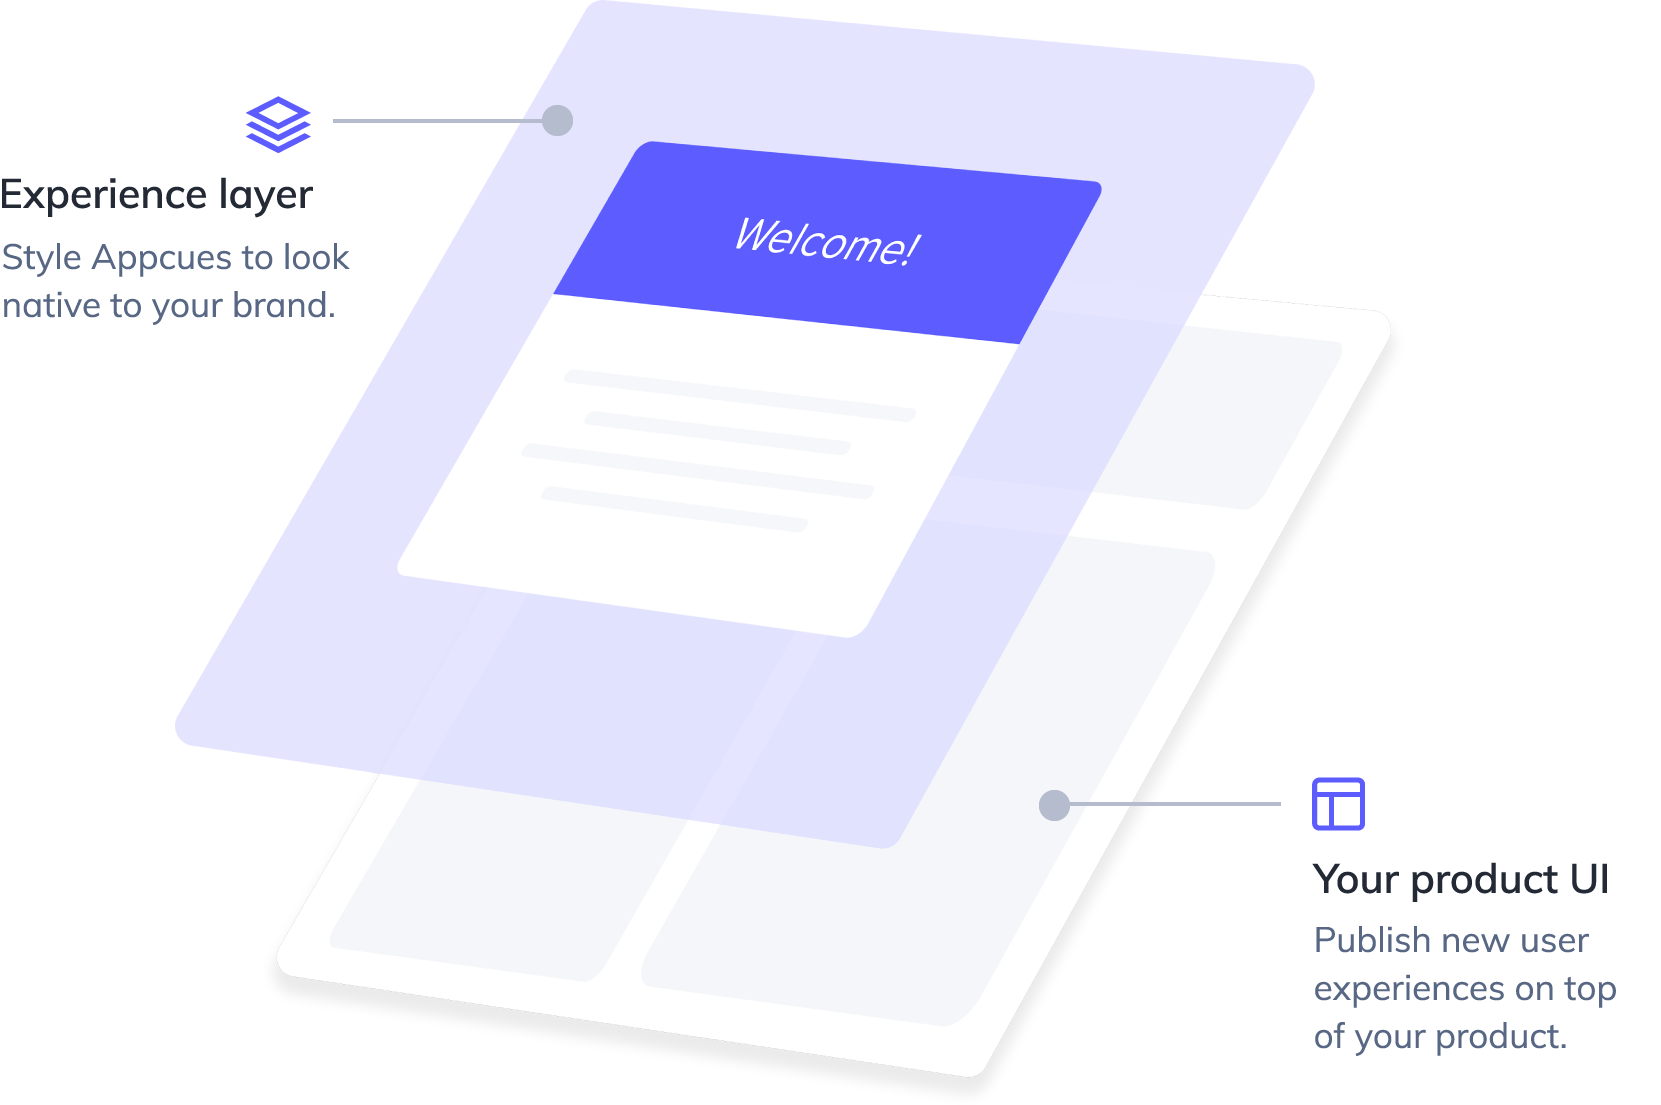 An illustration layer showing how Appcues can by styled completely native to your brand guidelines, while publishing new user experiences on top of your product.